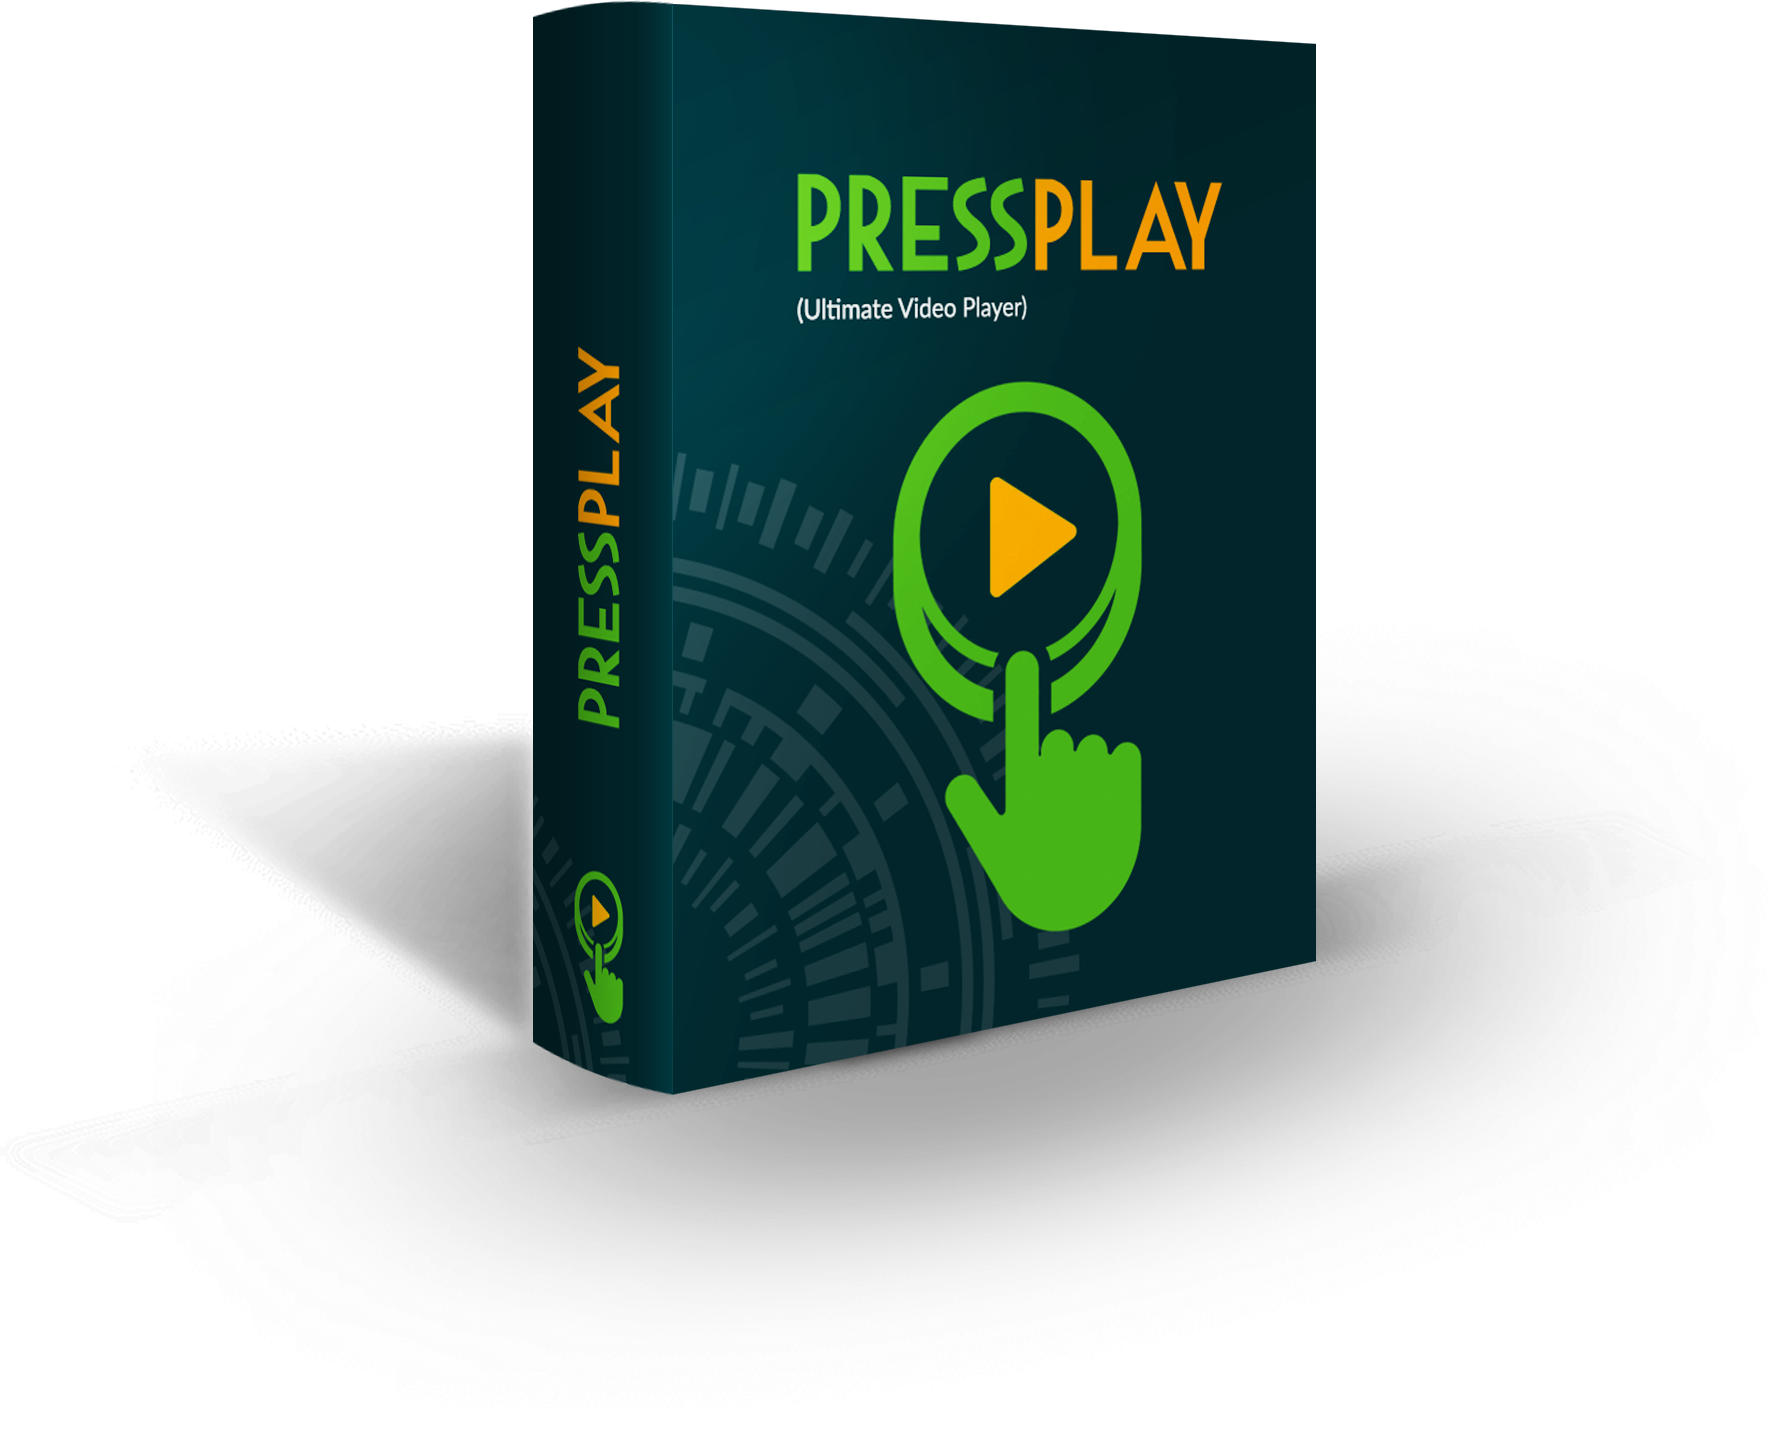 PressPlay (Ultimate Video Player)